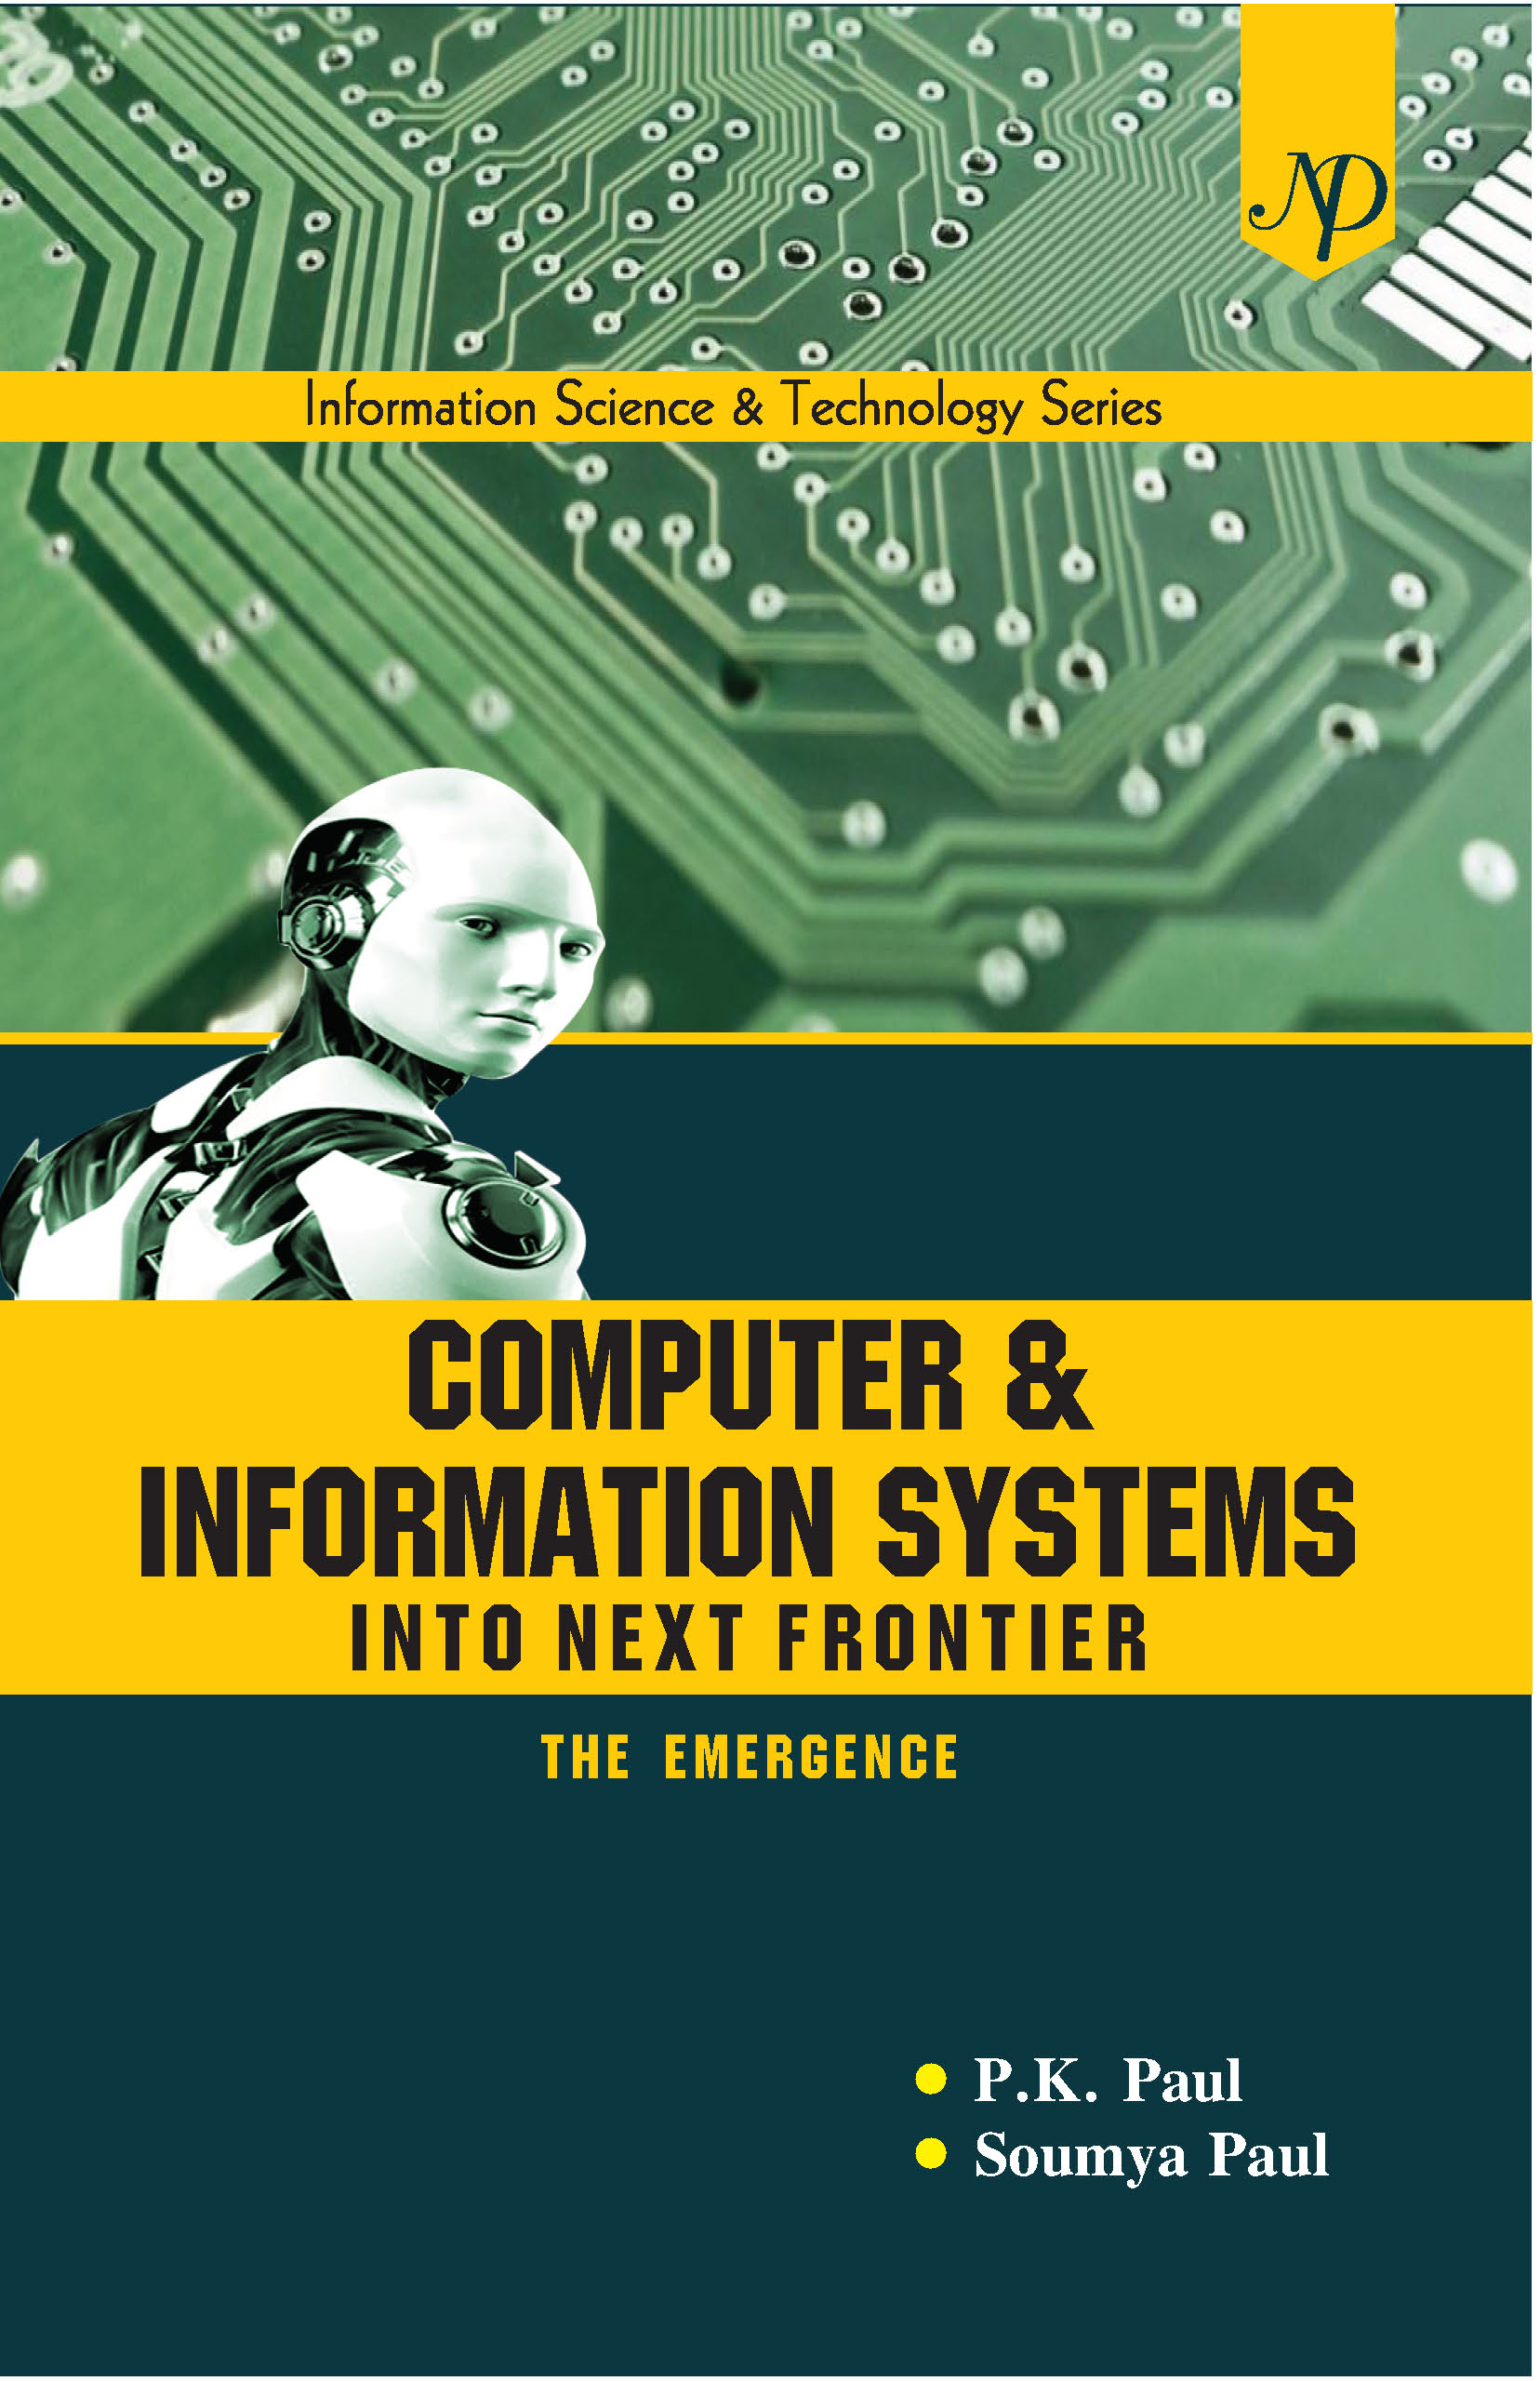 Compute & Information system into next fronteir cover.jpg